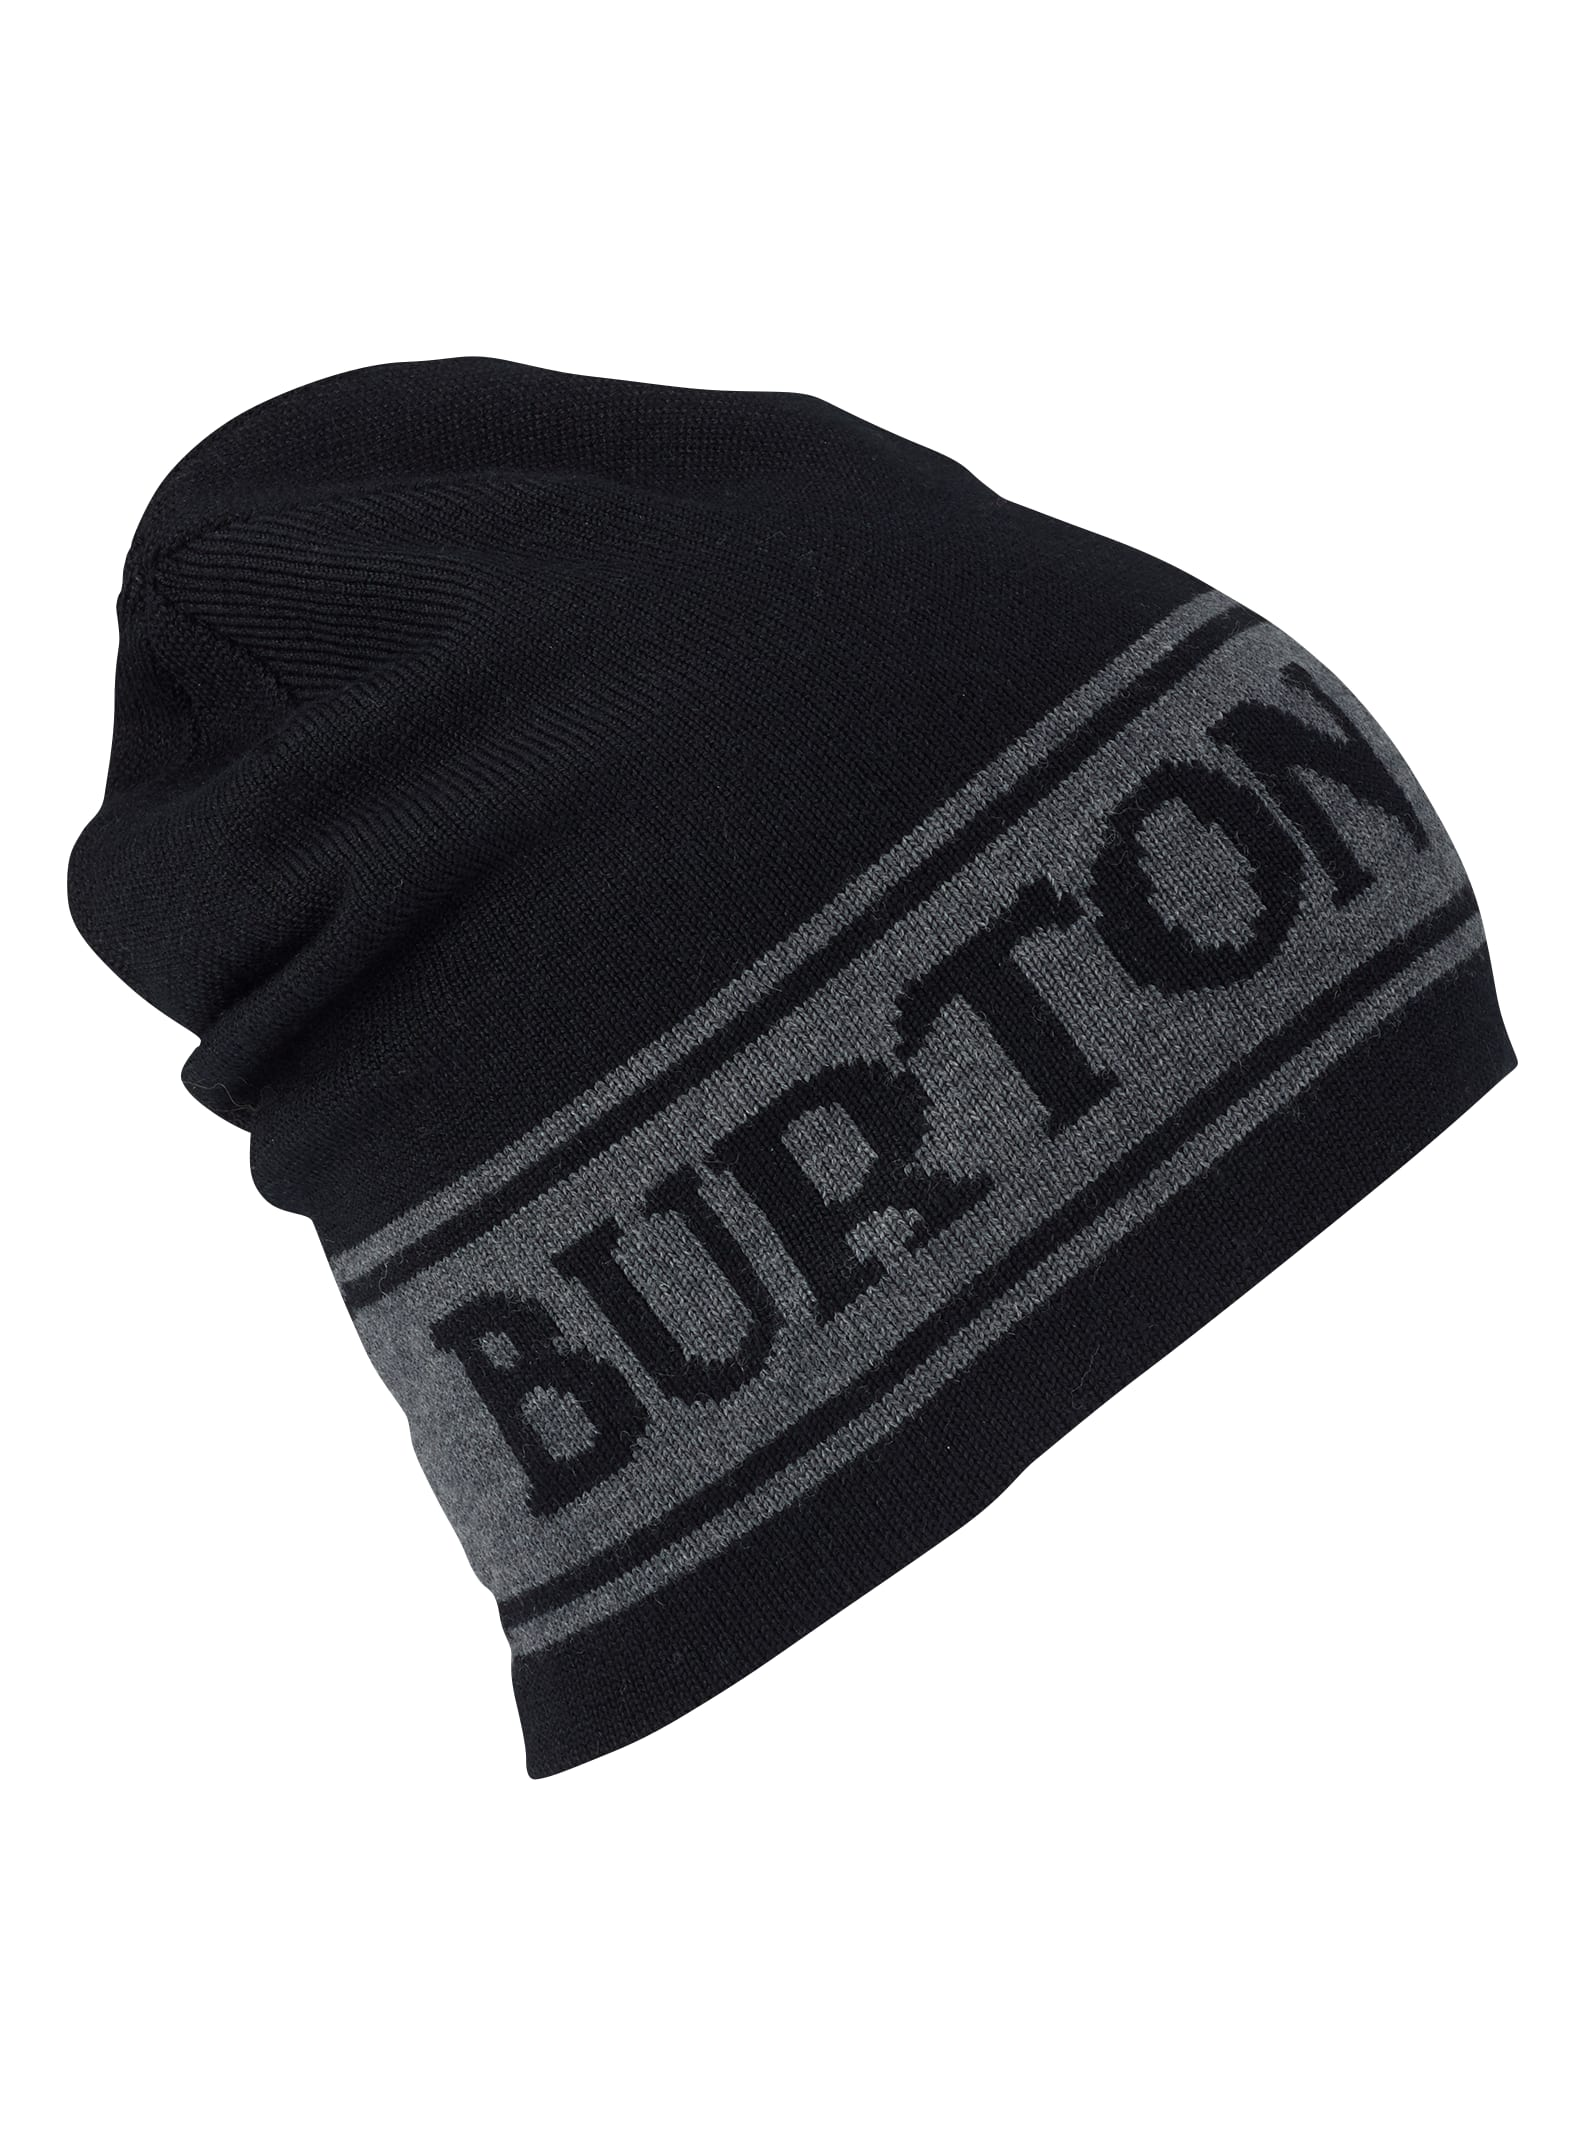 Burton Billboard Wool Beanie  99c8cd4f3b0